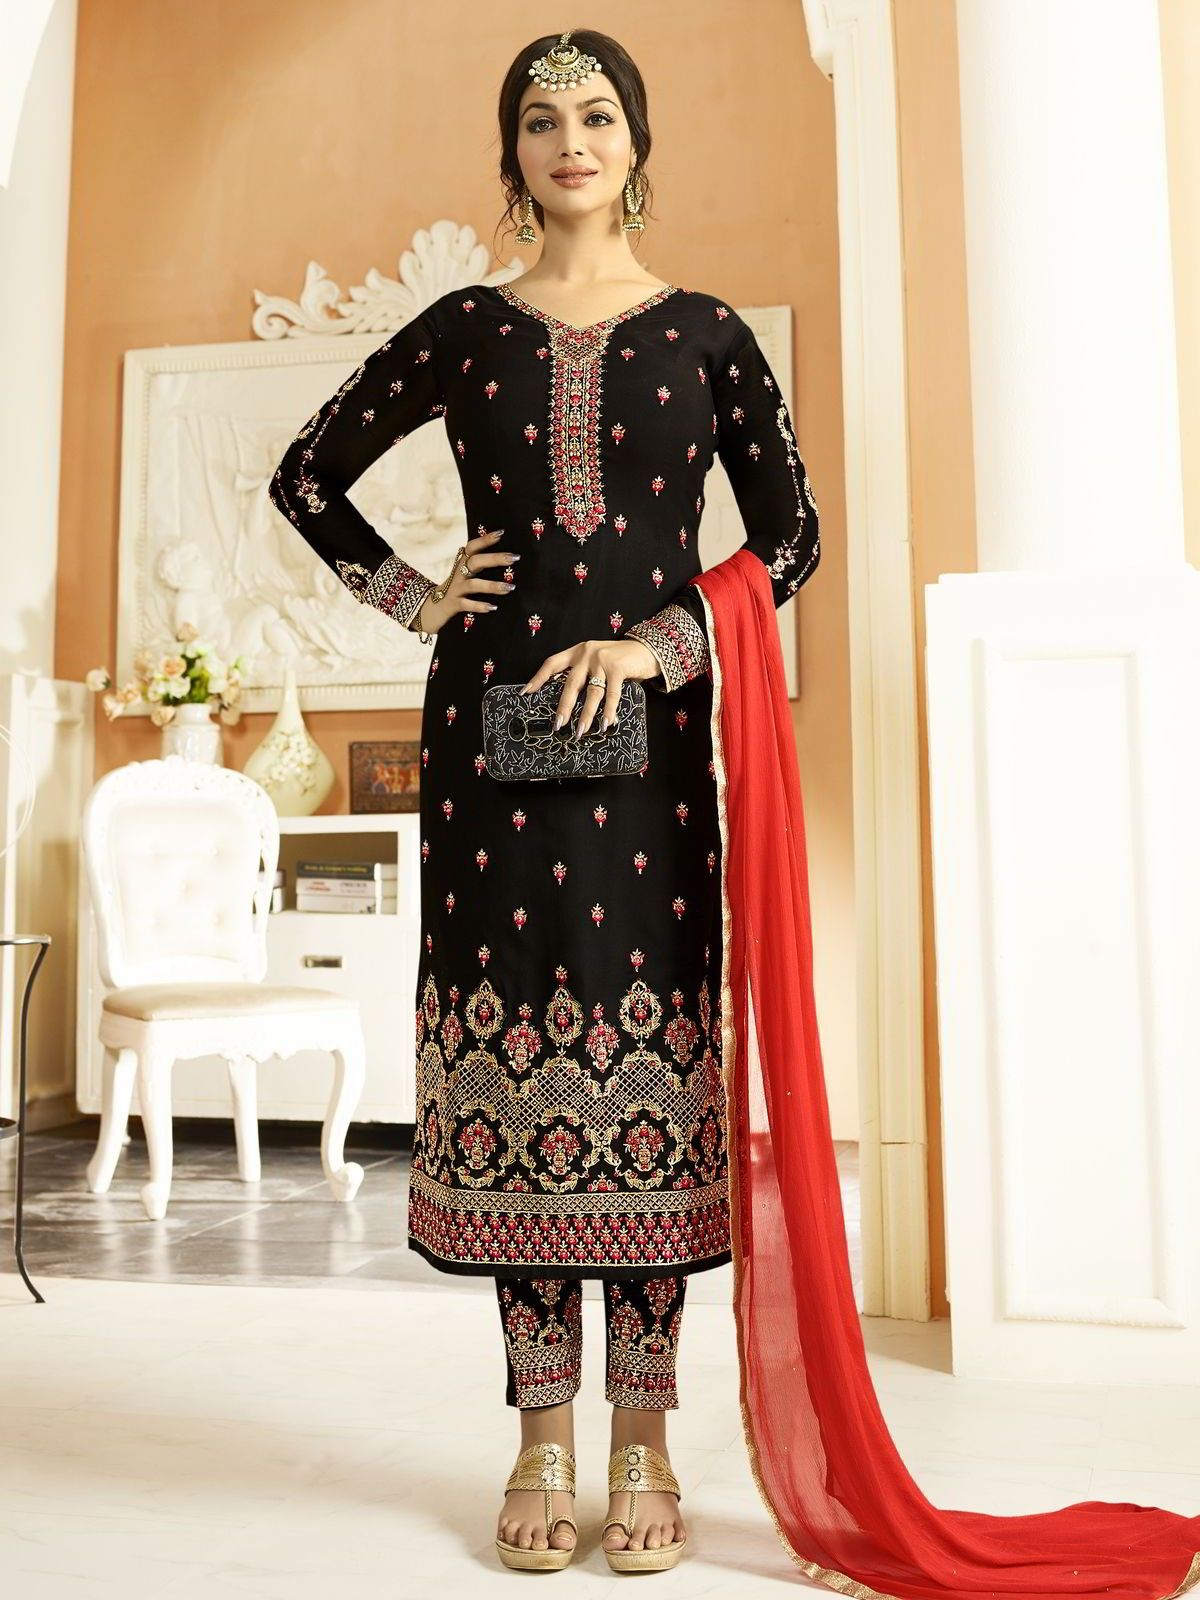 47e799ac07 Ayesha takia straight cut suit online which is crafted from black fabric  with exclusive embroidery and stone work. #Inddus #AyeshaTakia  #BollywoodSuits ...